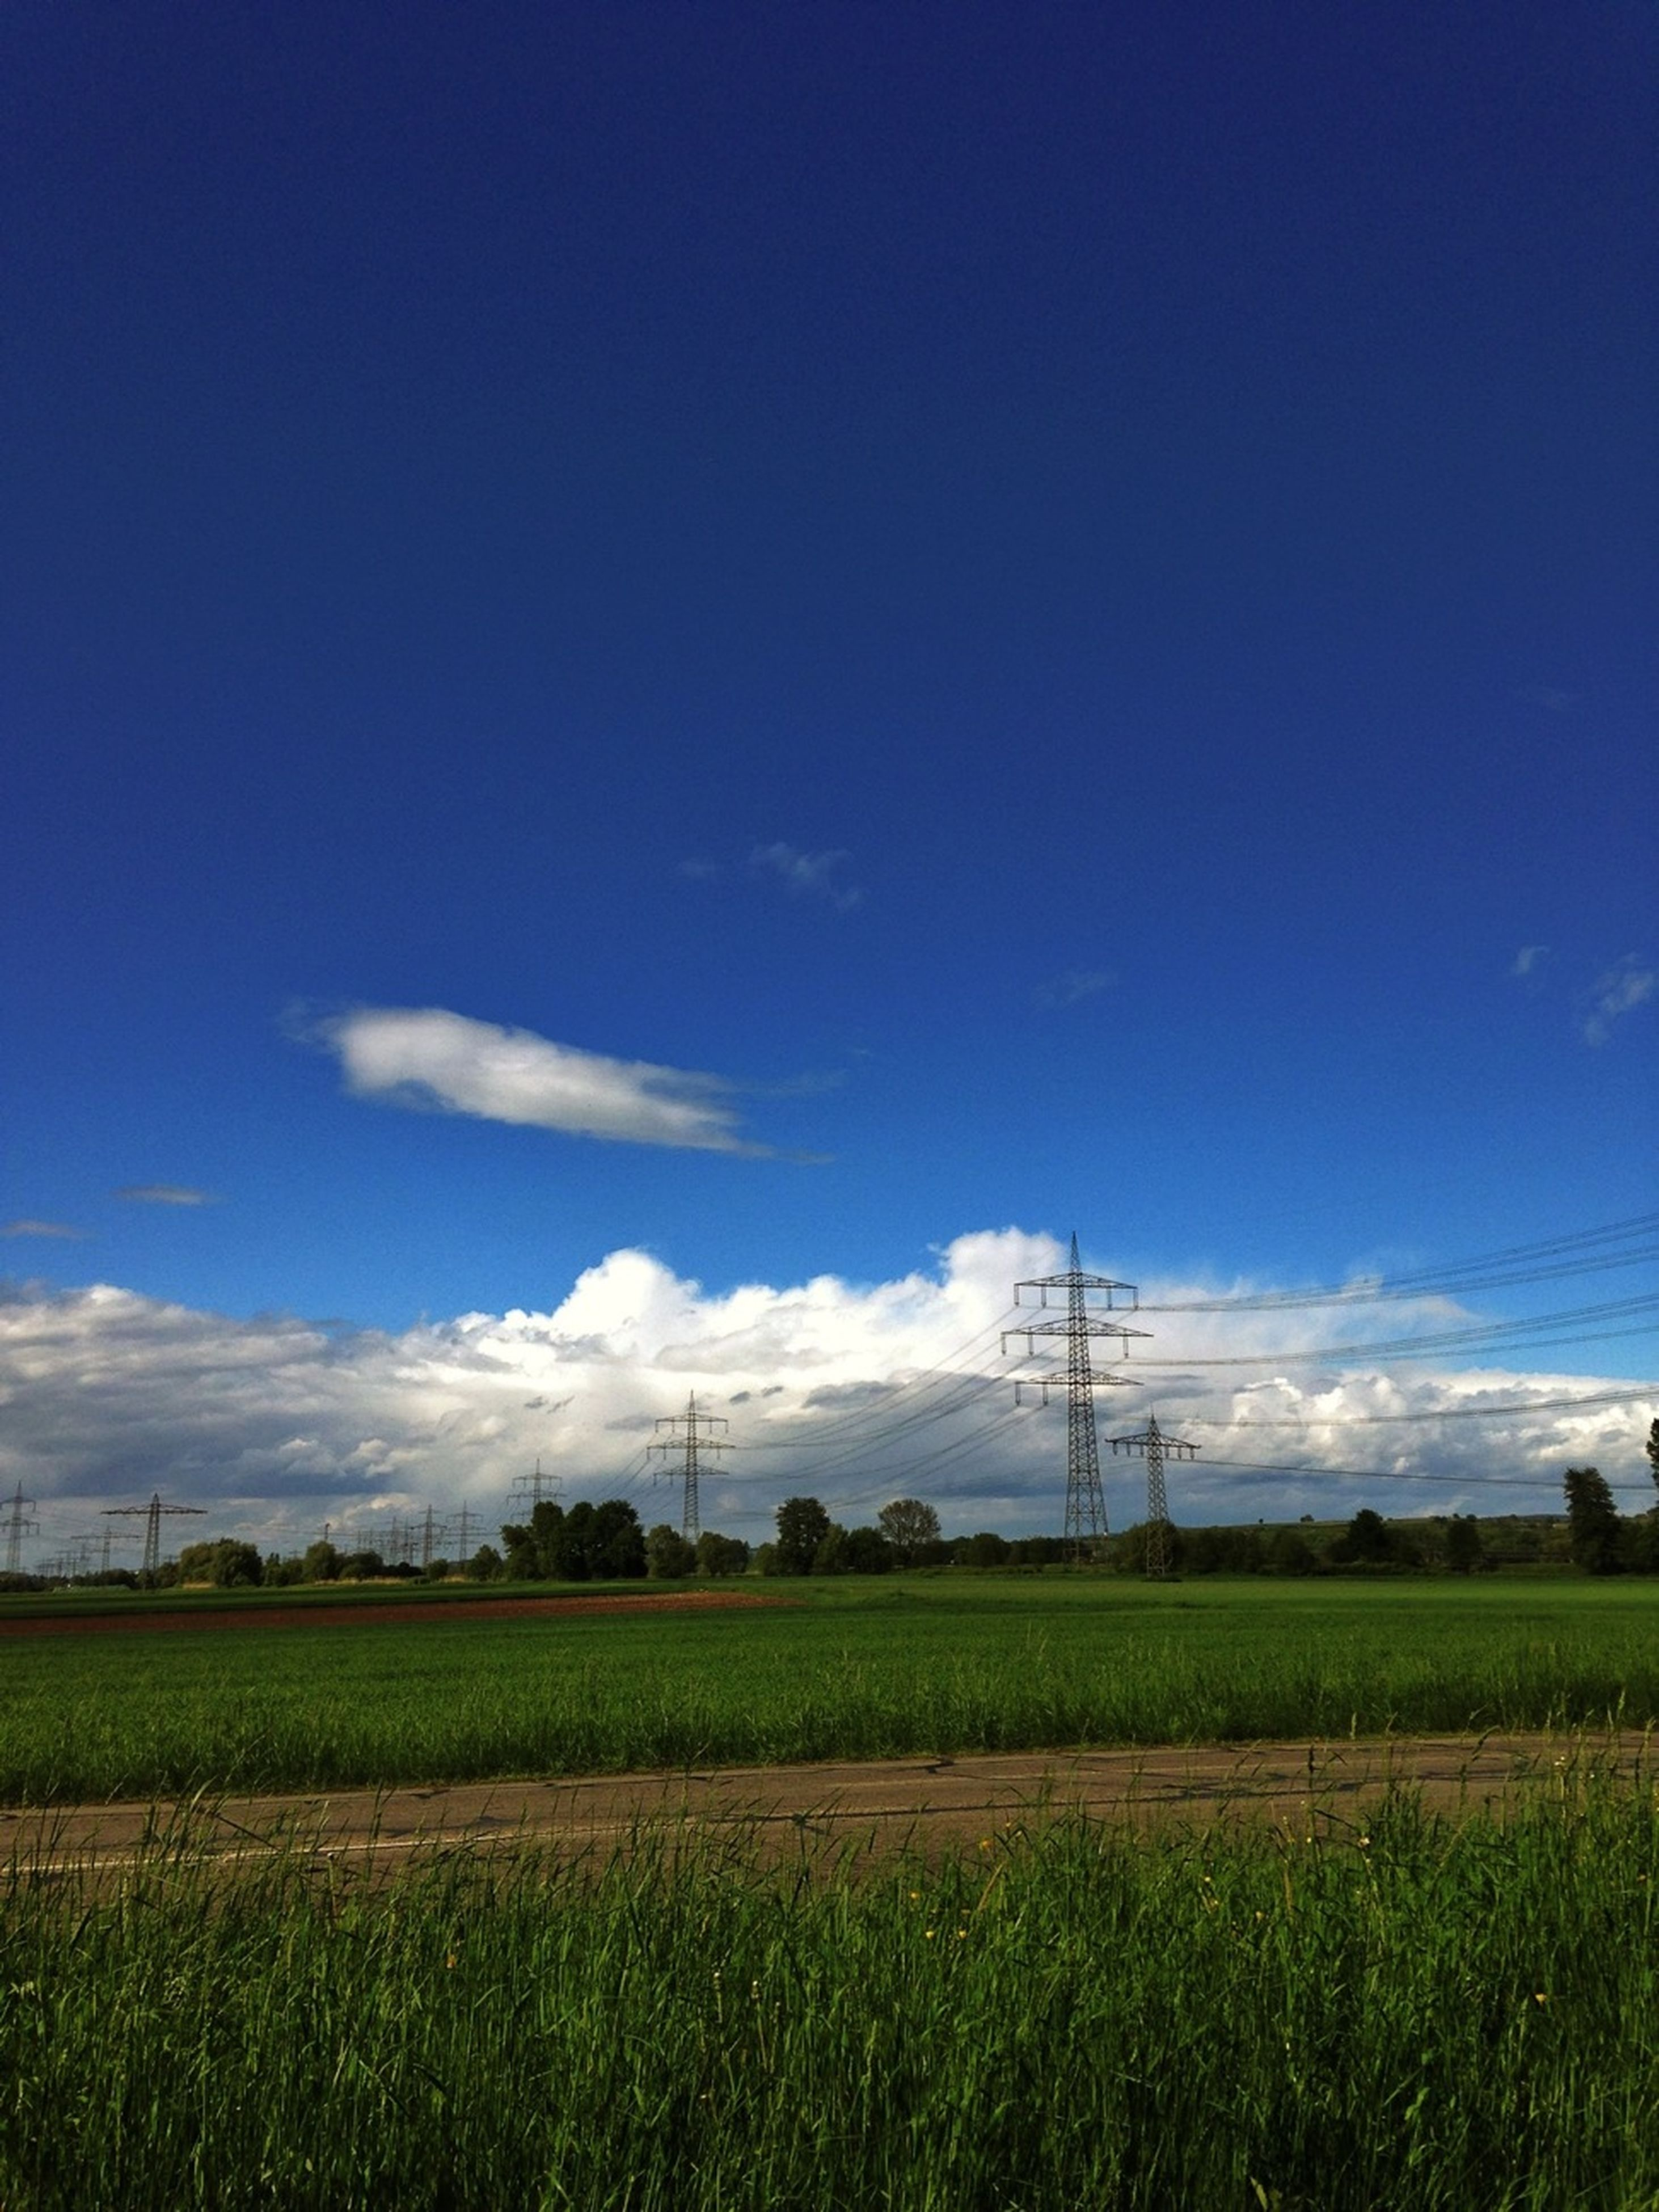 field, landscape, rural scene, agriculture, blue, tranquil scene, sky, tranquility, farm, electricity pylon, grass, power line, fuel and power generation, scenics, beauty in nature, crop, nature, growth, electricity, horizon over land